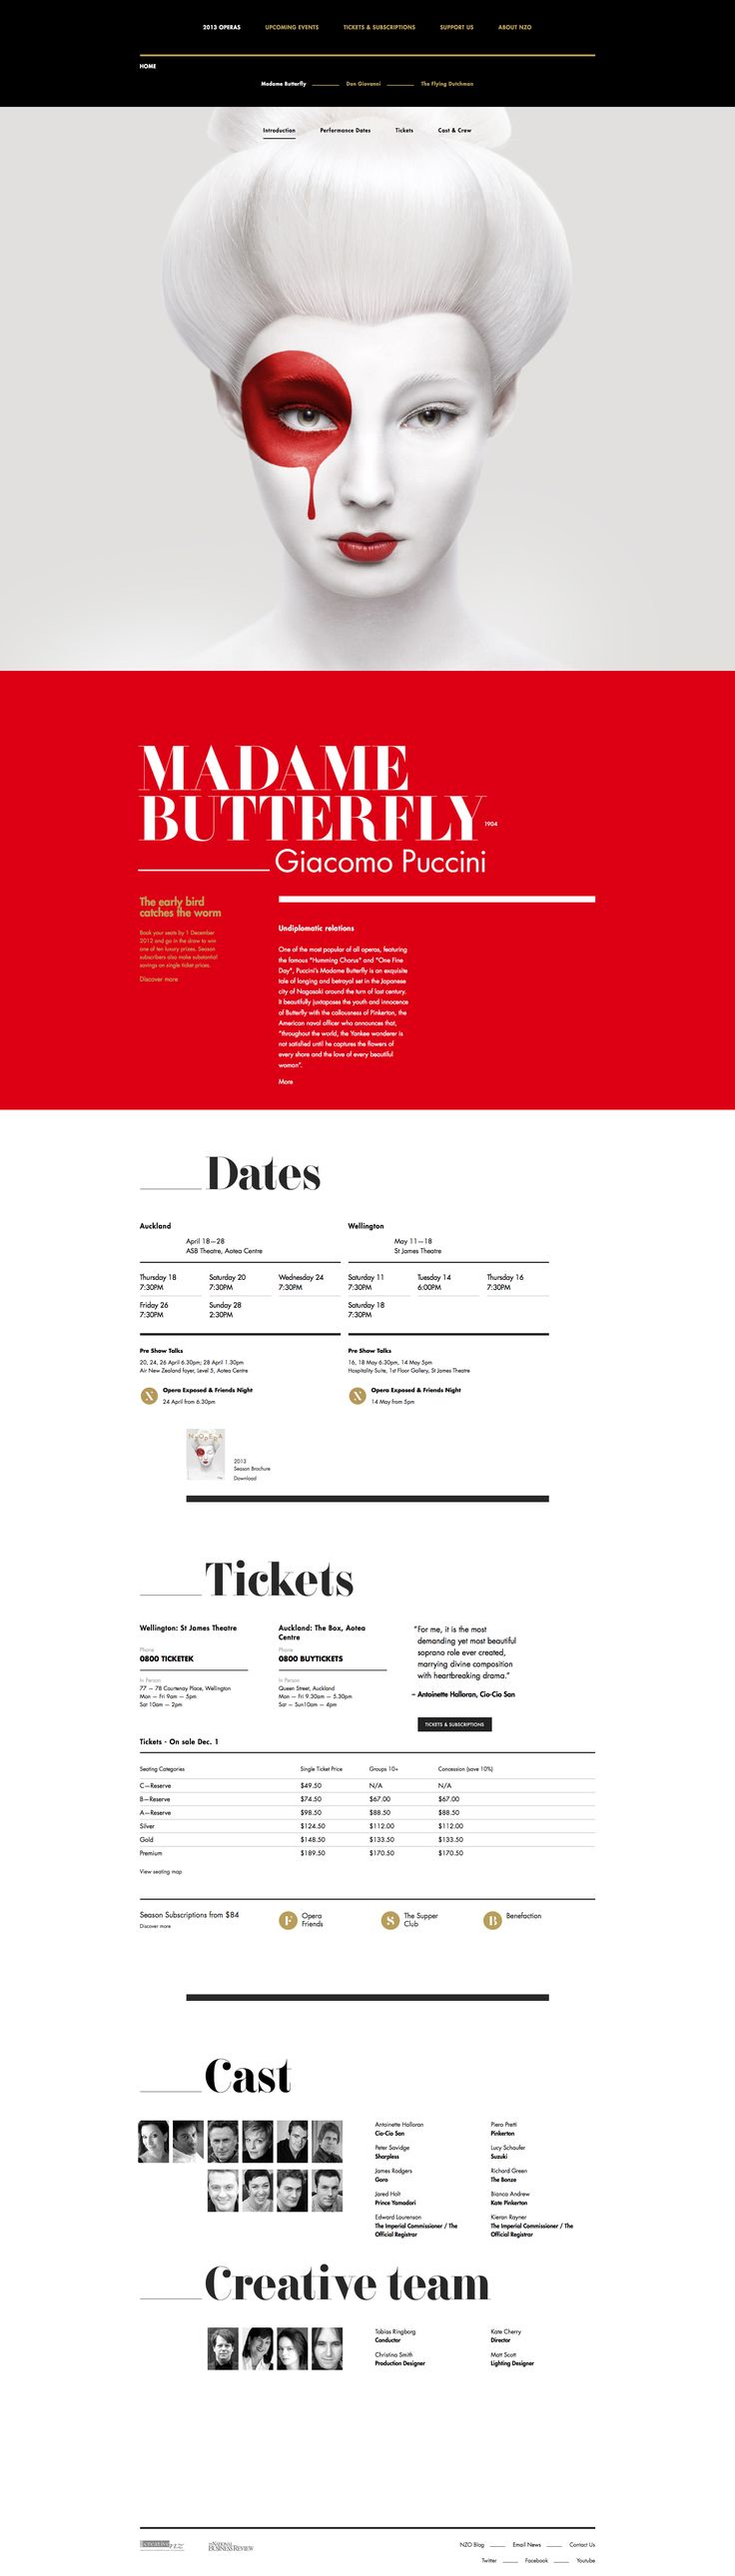 The typography in the main red section is bold and modern. Might be a nice option to explore this sort of magazine layout style for content pages